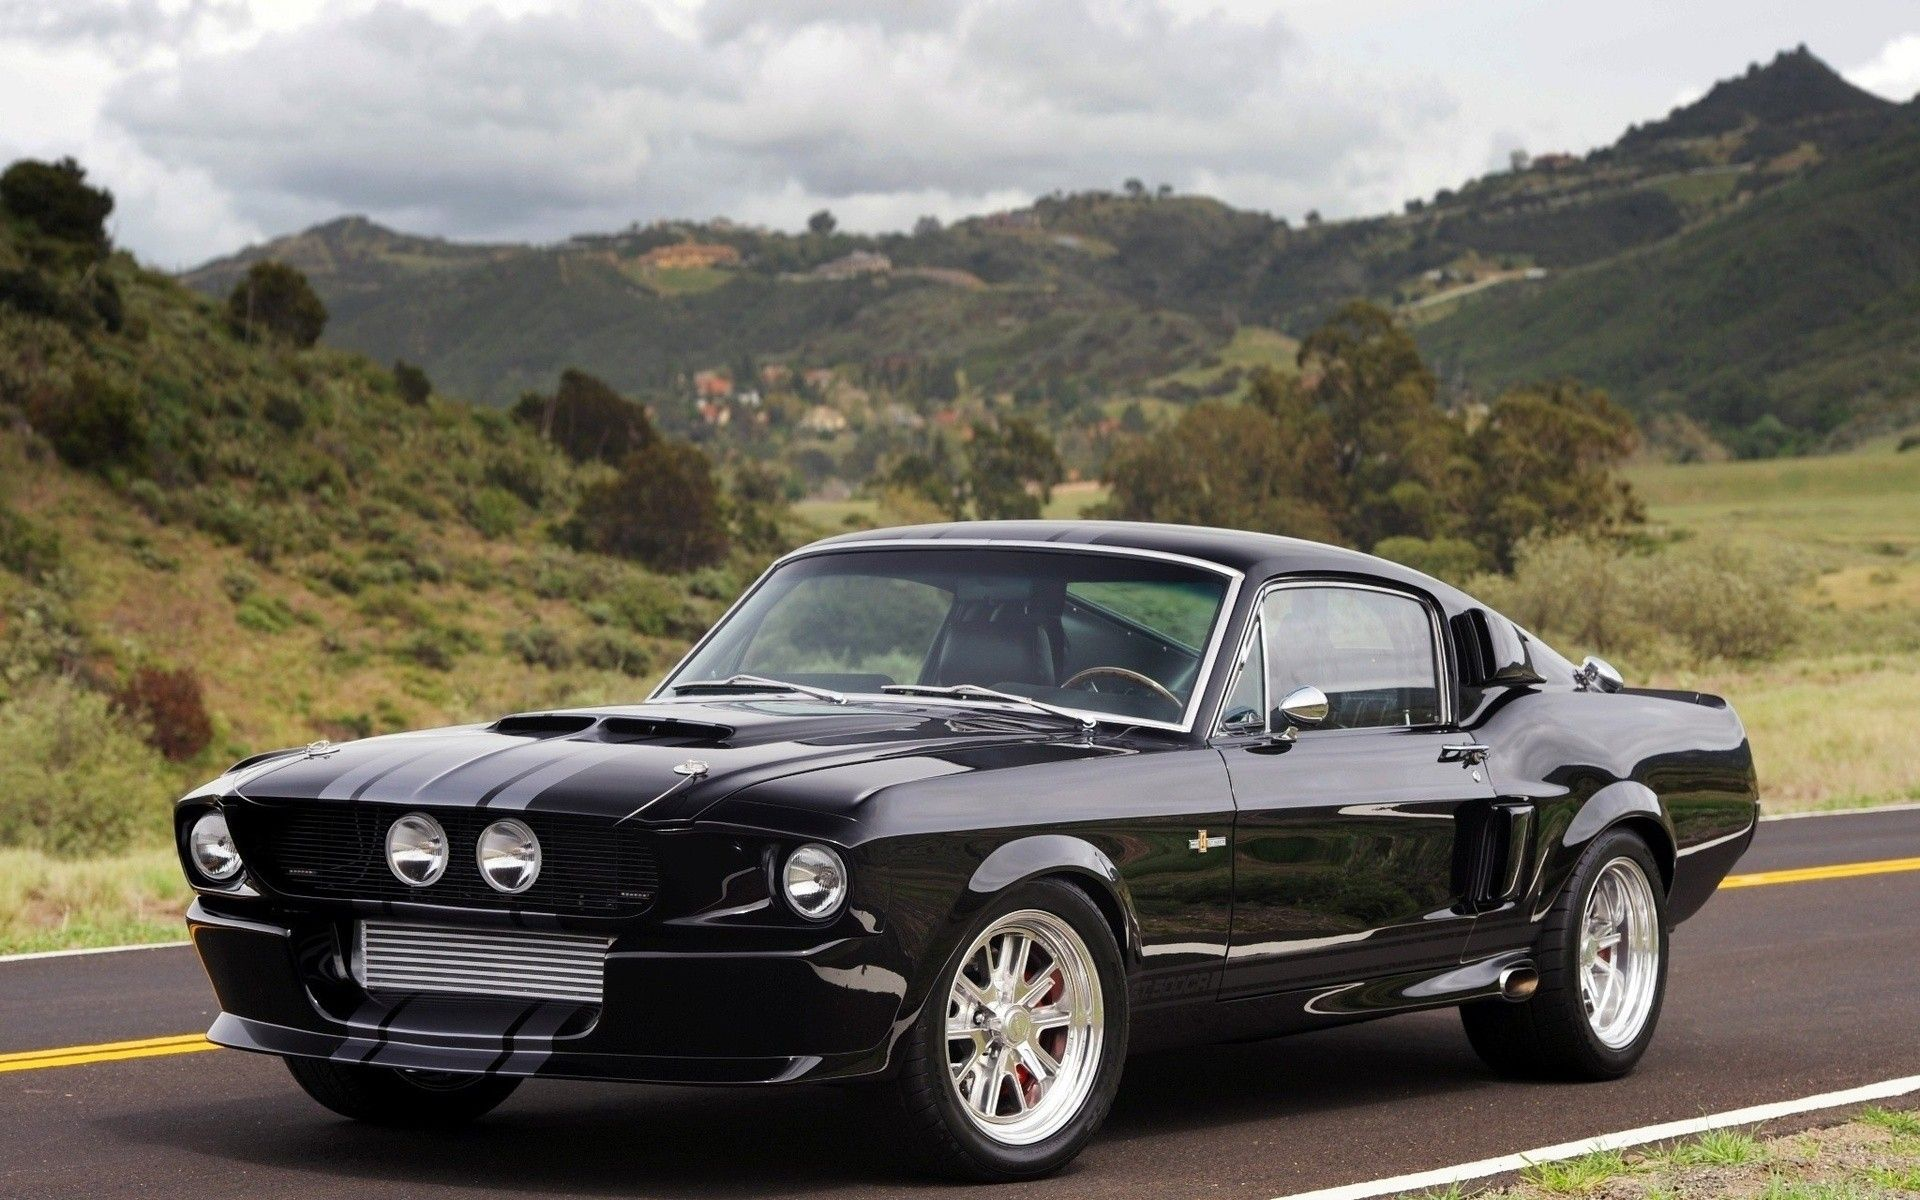 Landscapes black cars scenic vehicles ford mustang shelby gt500 1920x1200 wallpaper cars mustang cars ford mustang shelby gt500 ford mustang shelby